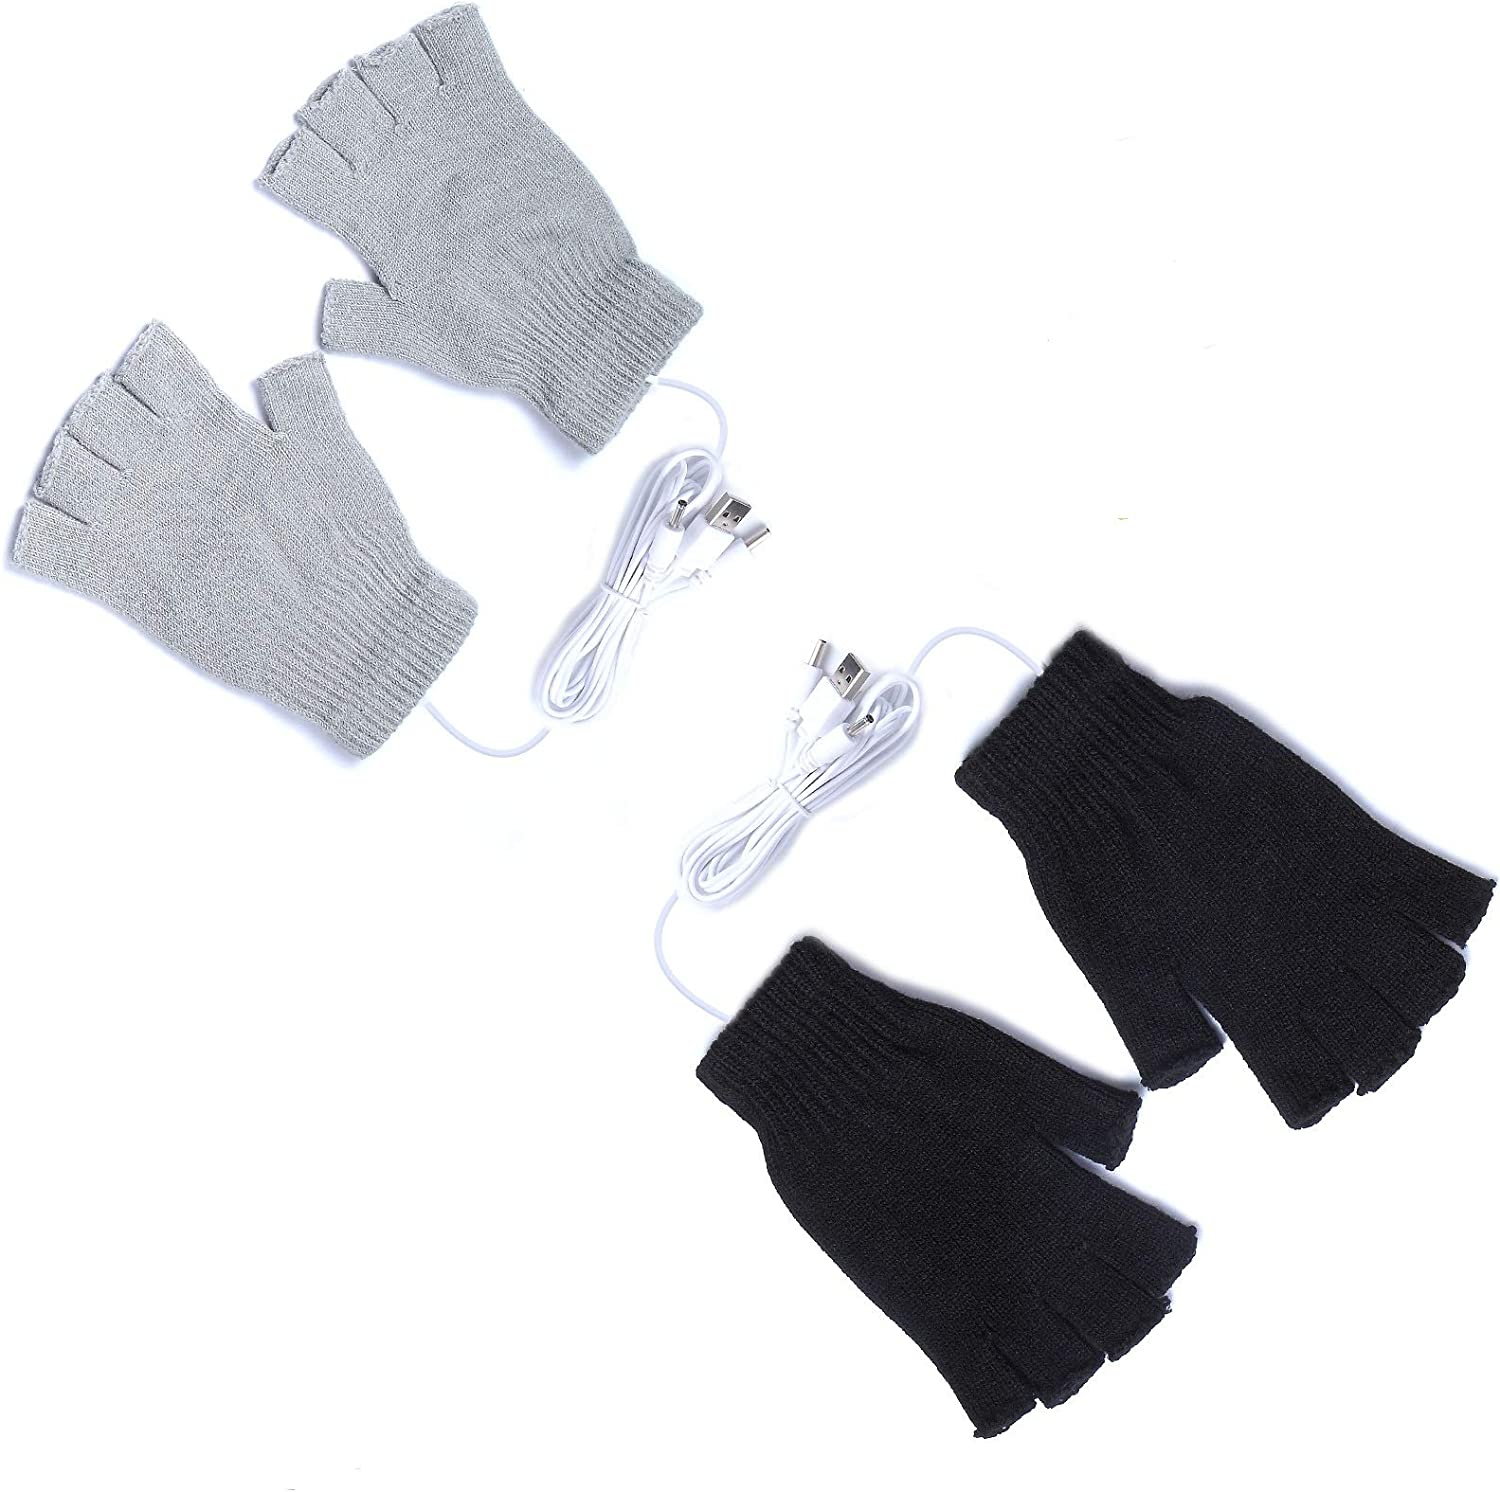 2 Pairs USB Heated Gloves for Men and Women, USB 2.0 Powered Stripes Heating Pattern Knitting Wool Heating Mittens Hands Warmer Fingerless Washable Design Winter Gift (Black & Gray)